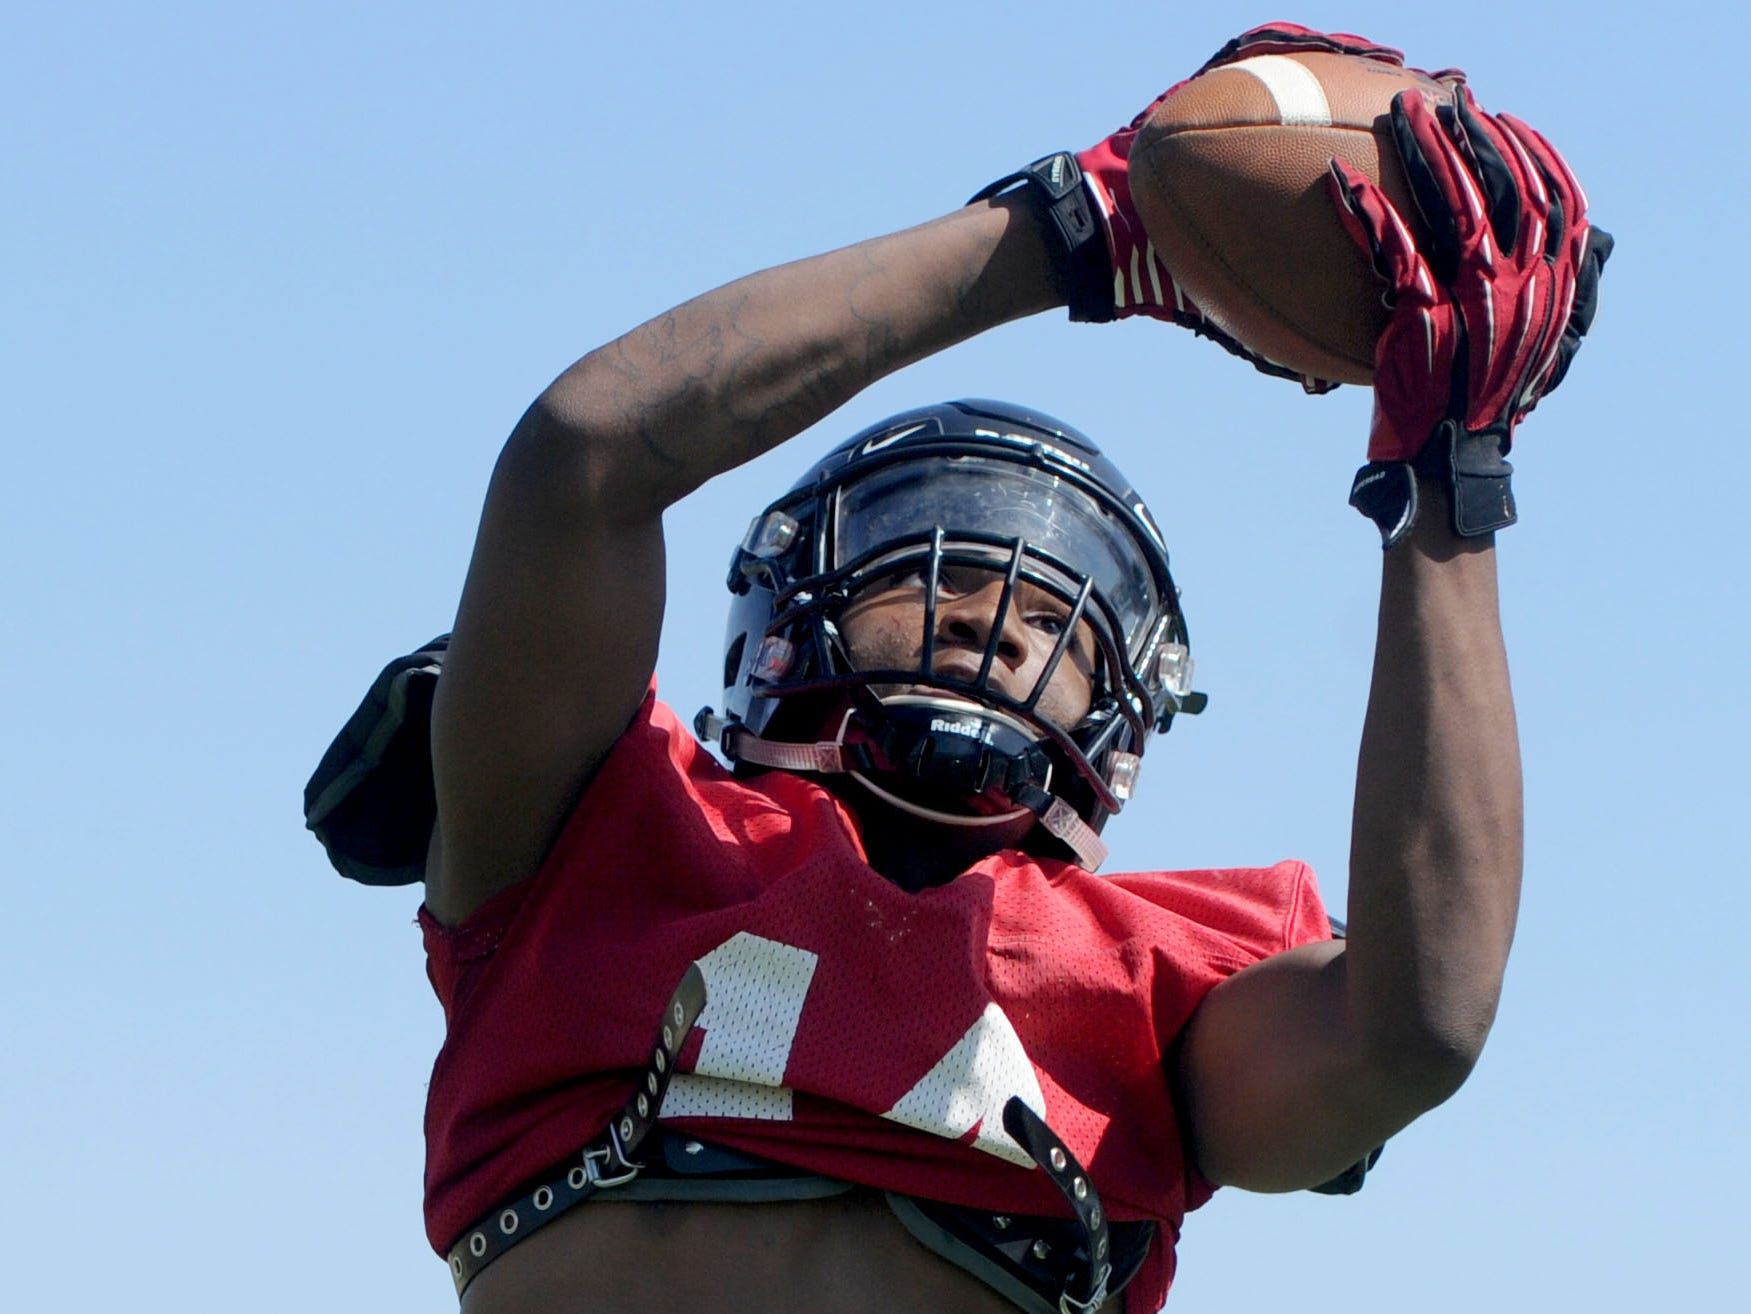 CJ Lewis, a transfer from Tennessee, is expected to be a big contributor at receiver this season for Rio Mesa.